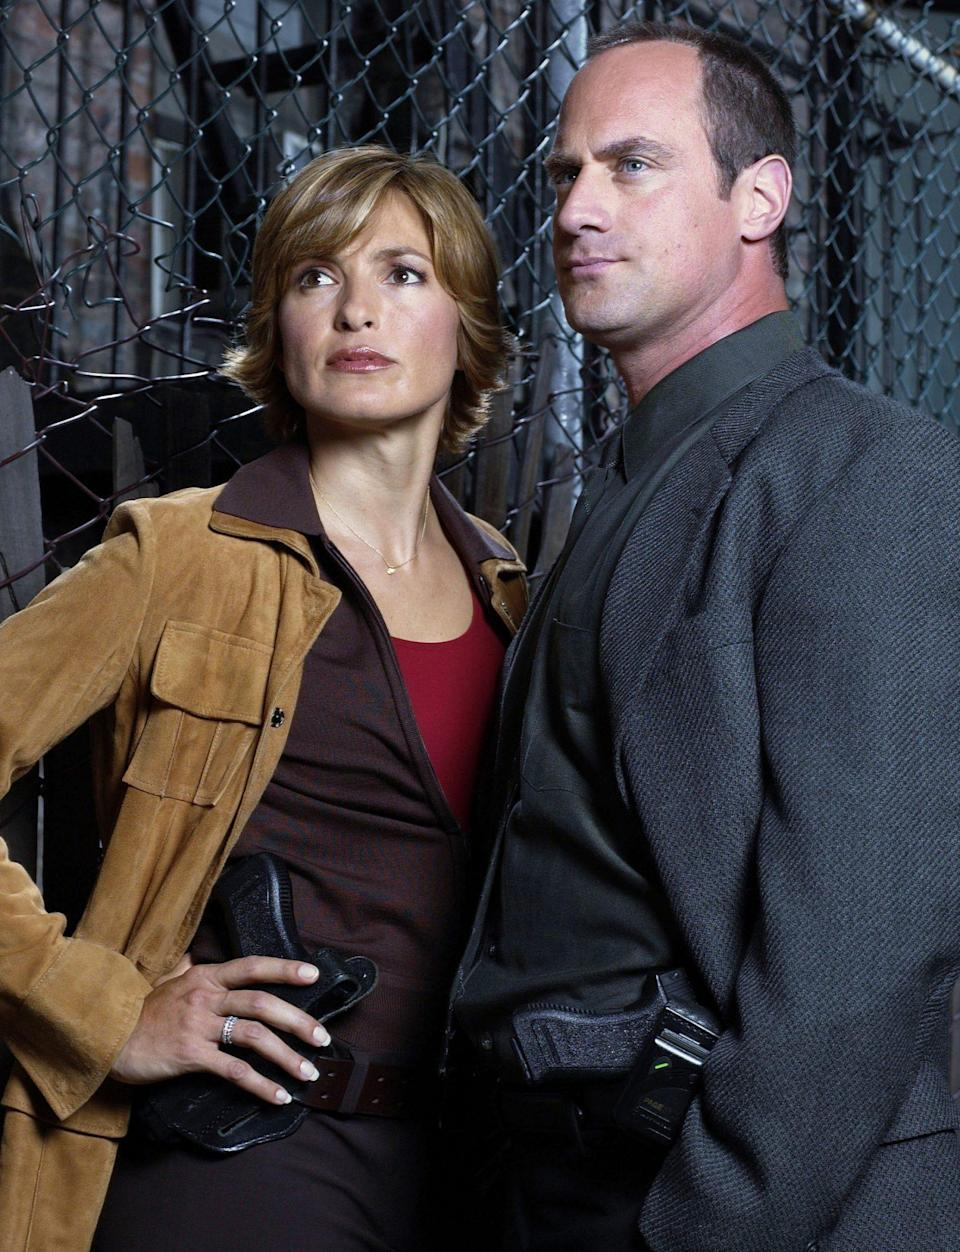 """<p><a href=""""https://people.com/tv/mariska-hargitay-was-devastated-when-chris-meloni-left-law-order-svu/"""" rel=""""nofollow noopener"""" target=""""_blank"""" data-ylk=""""slk:Hargitay told PEOPLE she was &quot;devastated&quot;"""" class=""""link rapid-noclick-resp"""">Hargitay told PEOPLE she was """"devastated""""</a> when her friend and costar abruptly exited the series.</p> <p>""""I was just so sad, because we started this thing and built it together,"""" she explained. """"And we went through so many milestones and spent so much time together and understood so many things that nobody else could understand.""""</p>"""